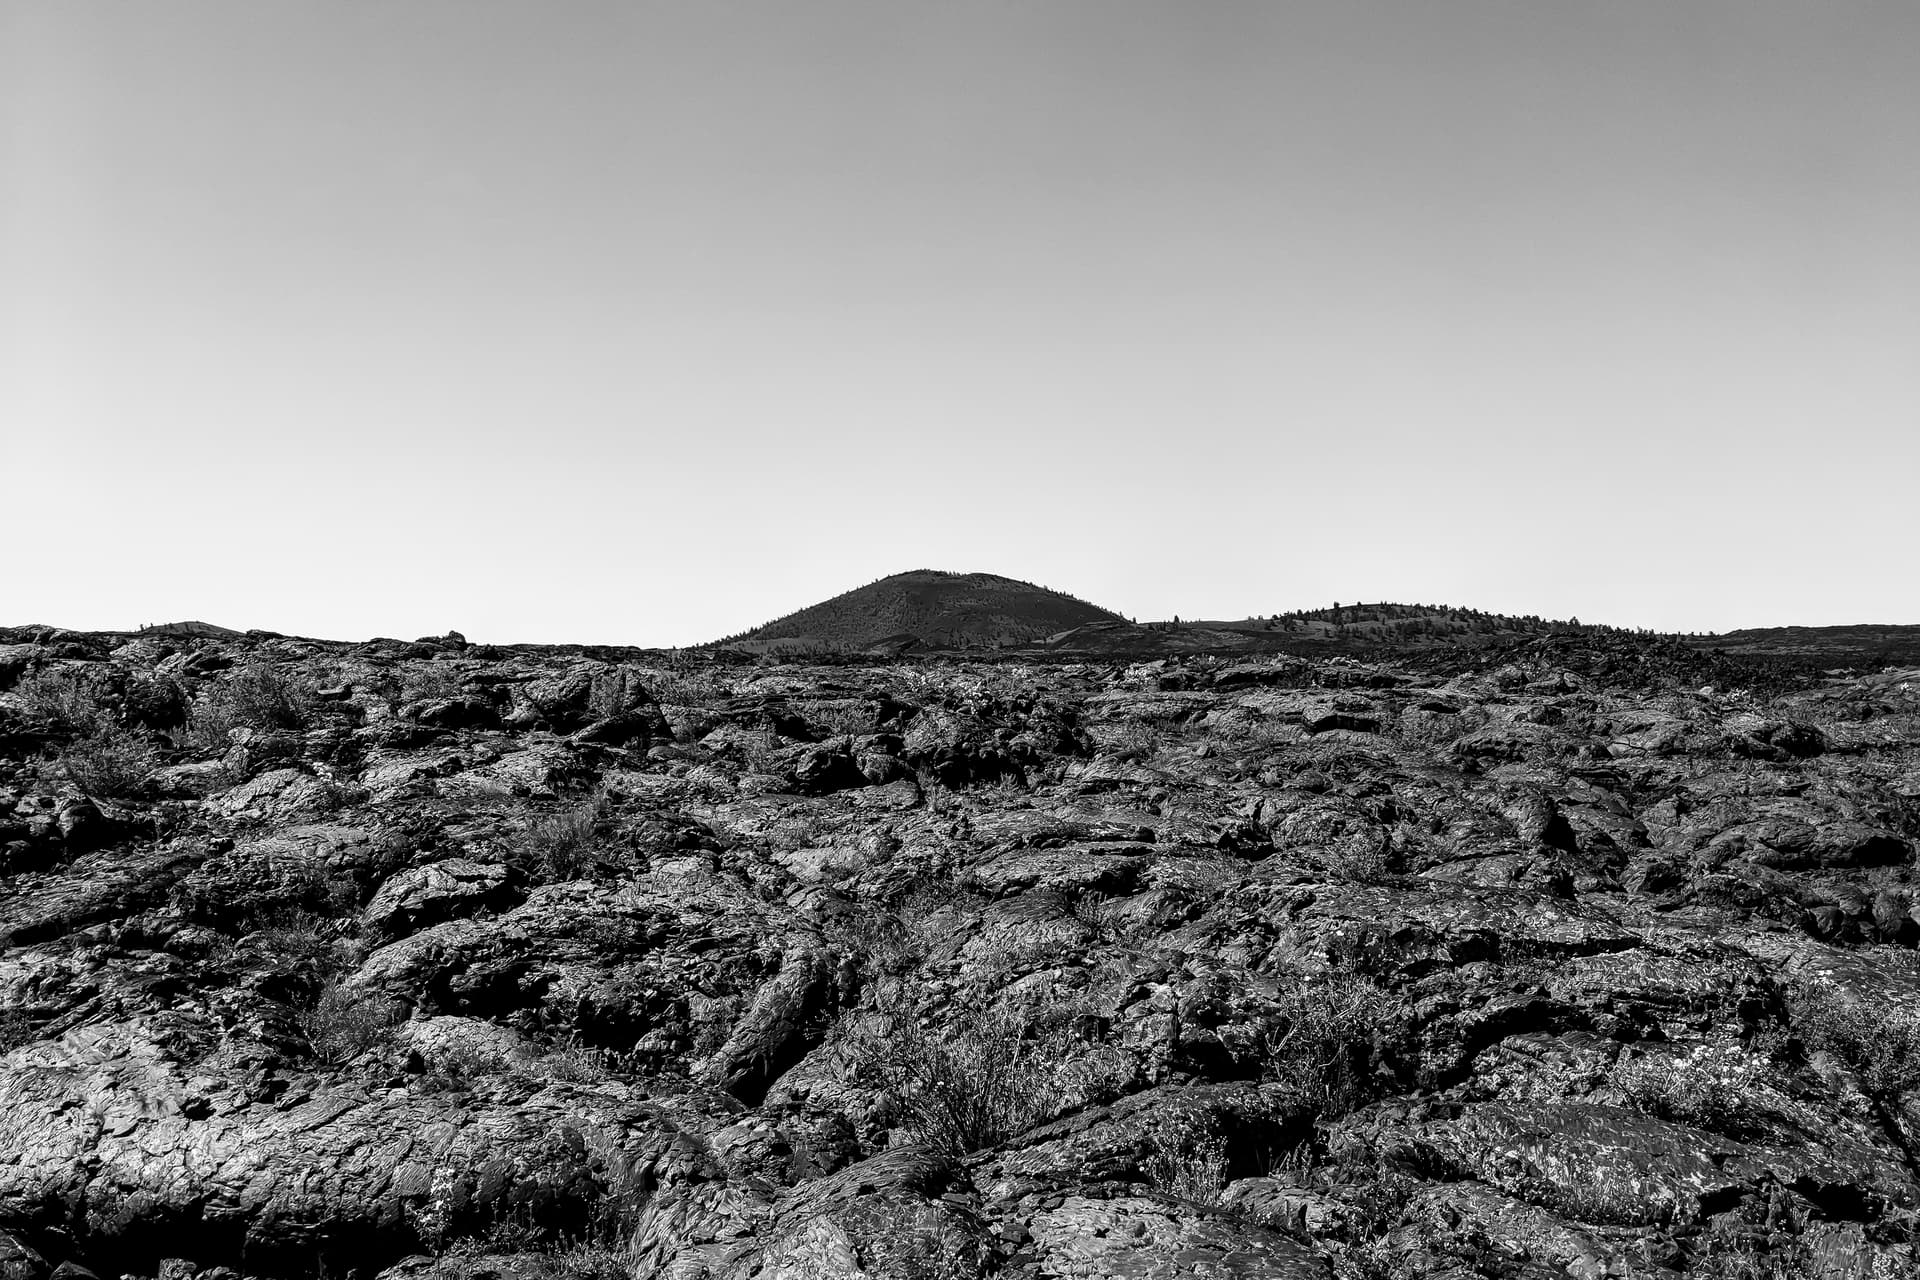 A scrub- and pine-covered cinder cone rises above a field of pillowy lava flows.